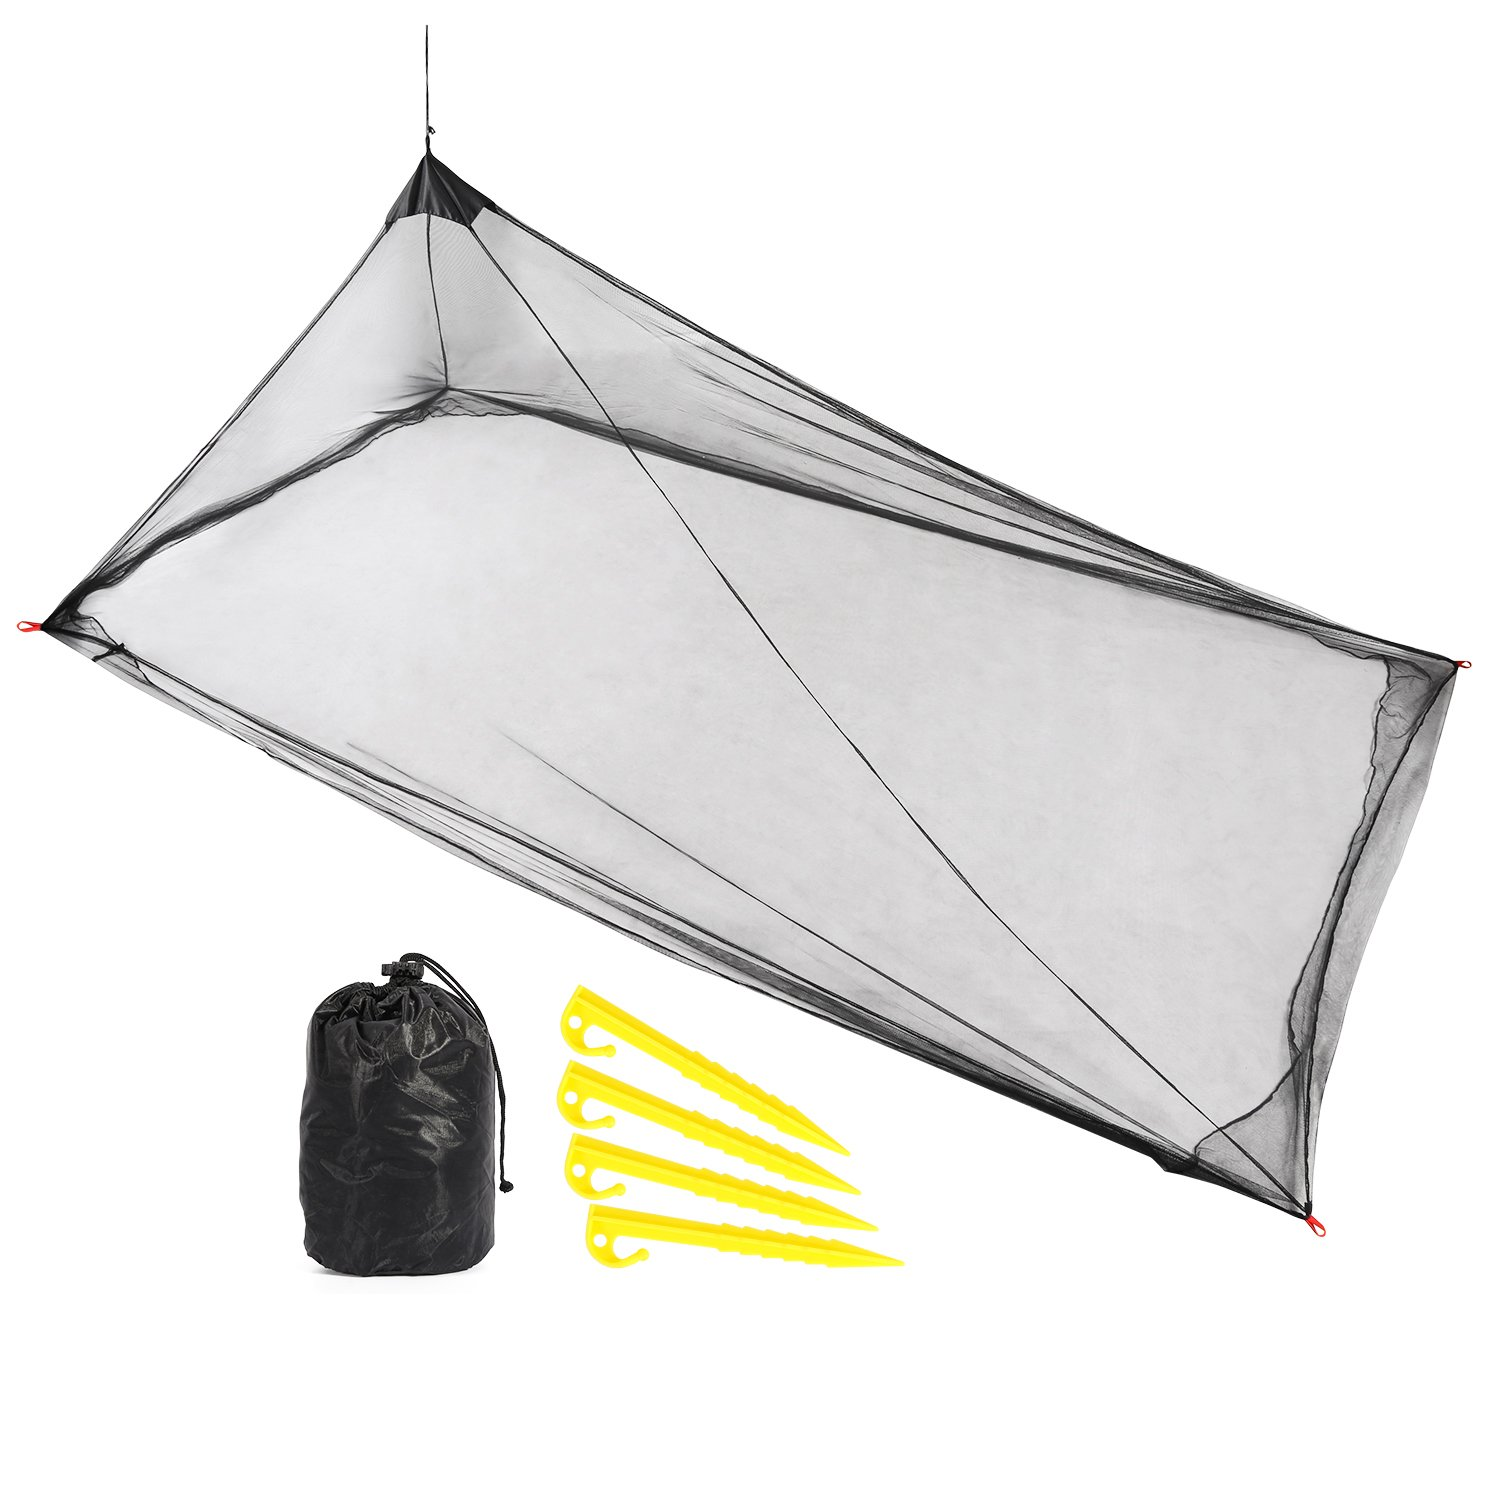 REDCAMP Single Camping Mosquito Net for Bed, Compact and Lightweight, Black